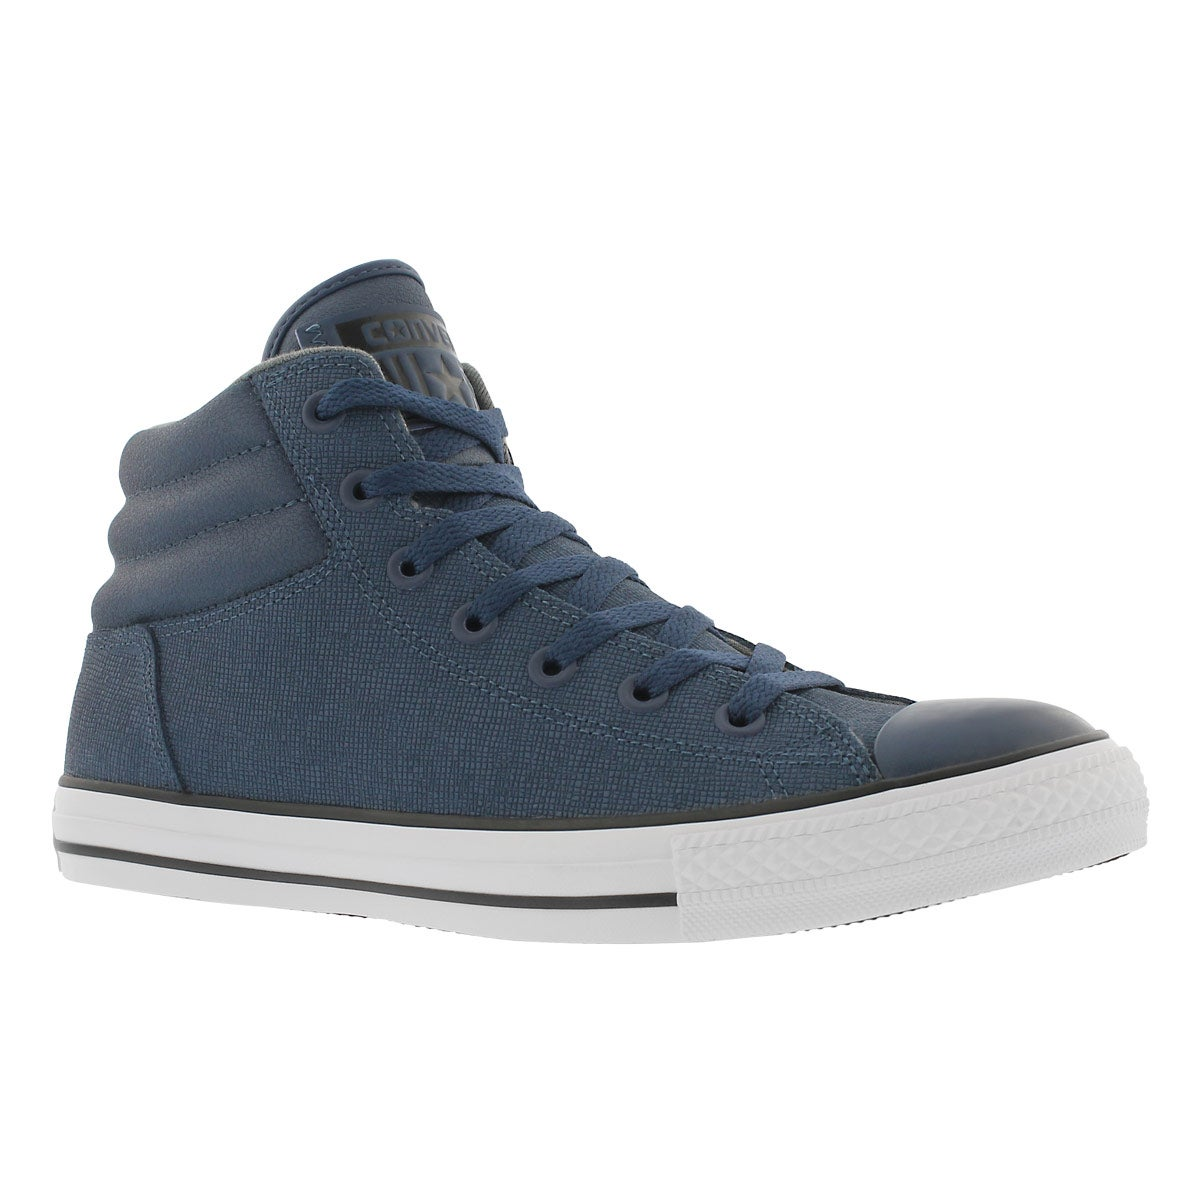 Men's CT ALL STAR FRESH navy hi top sneakers